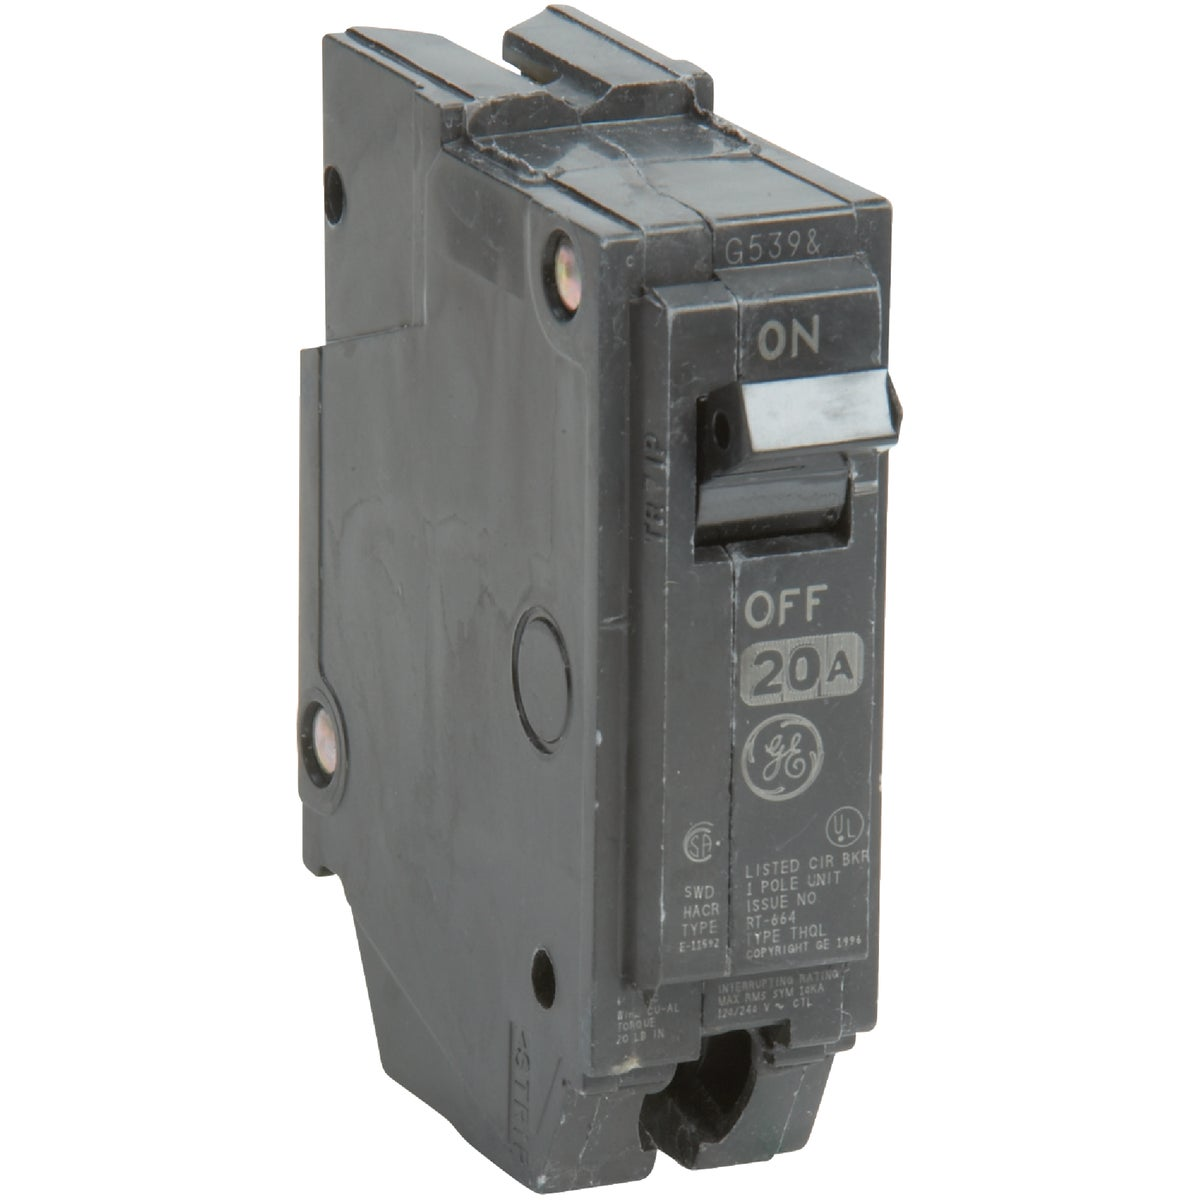 20A SP CIRCUIT BREAKER - THQL1120 by G E Industrial